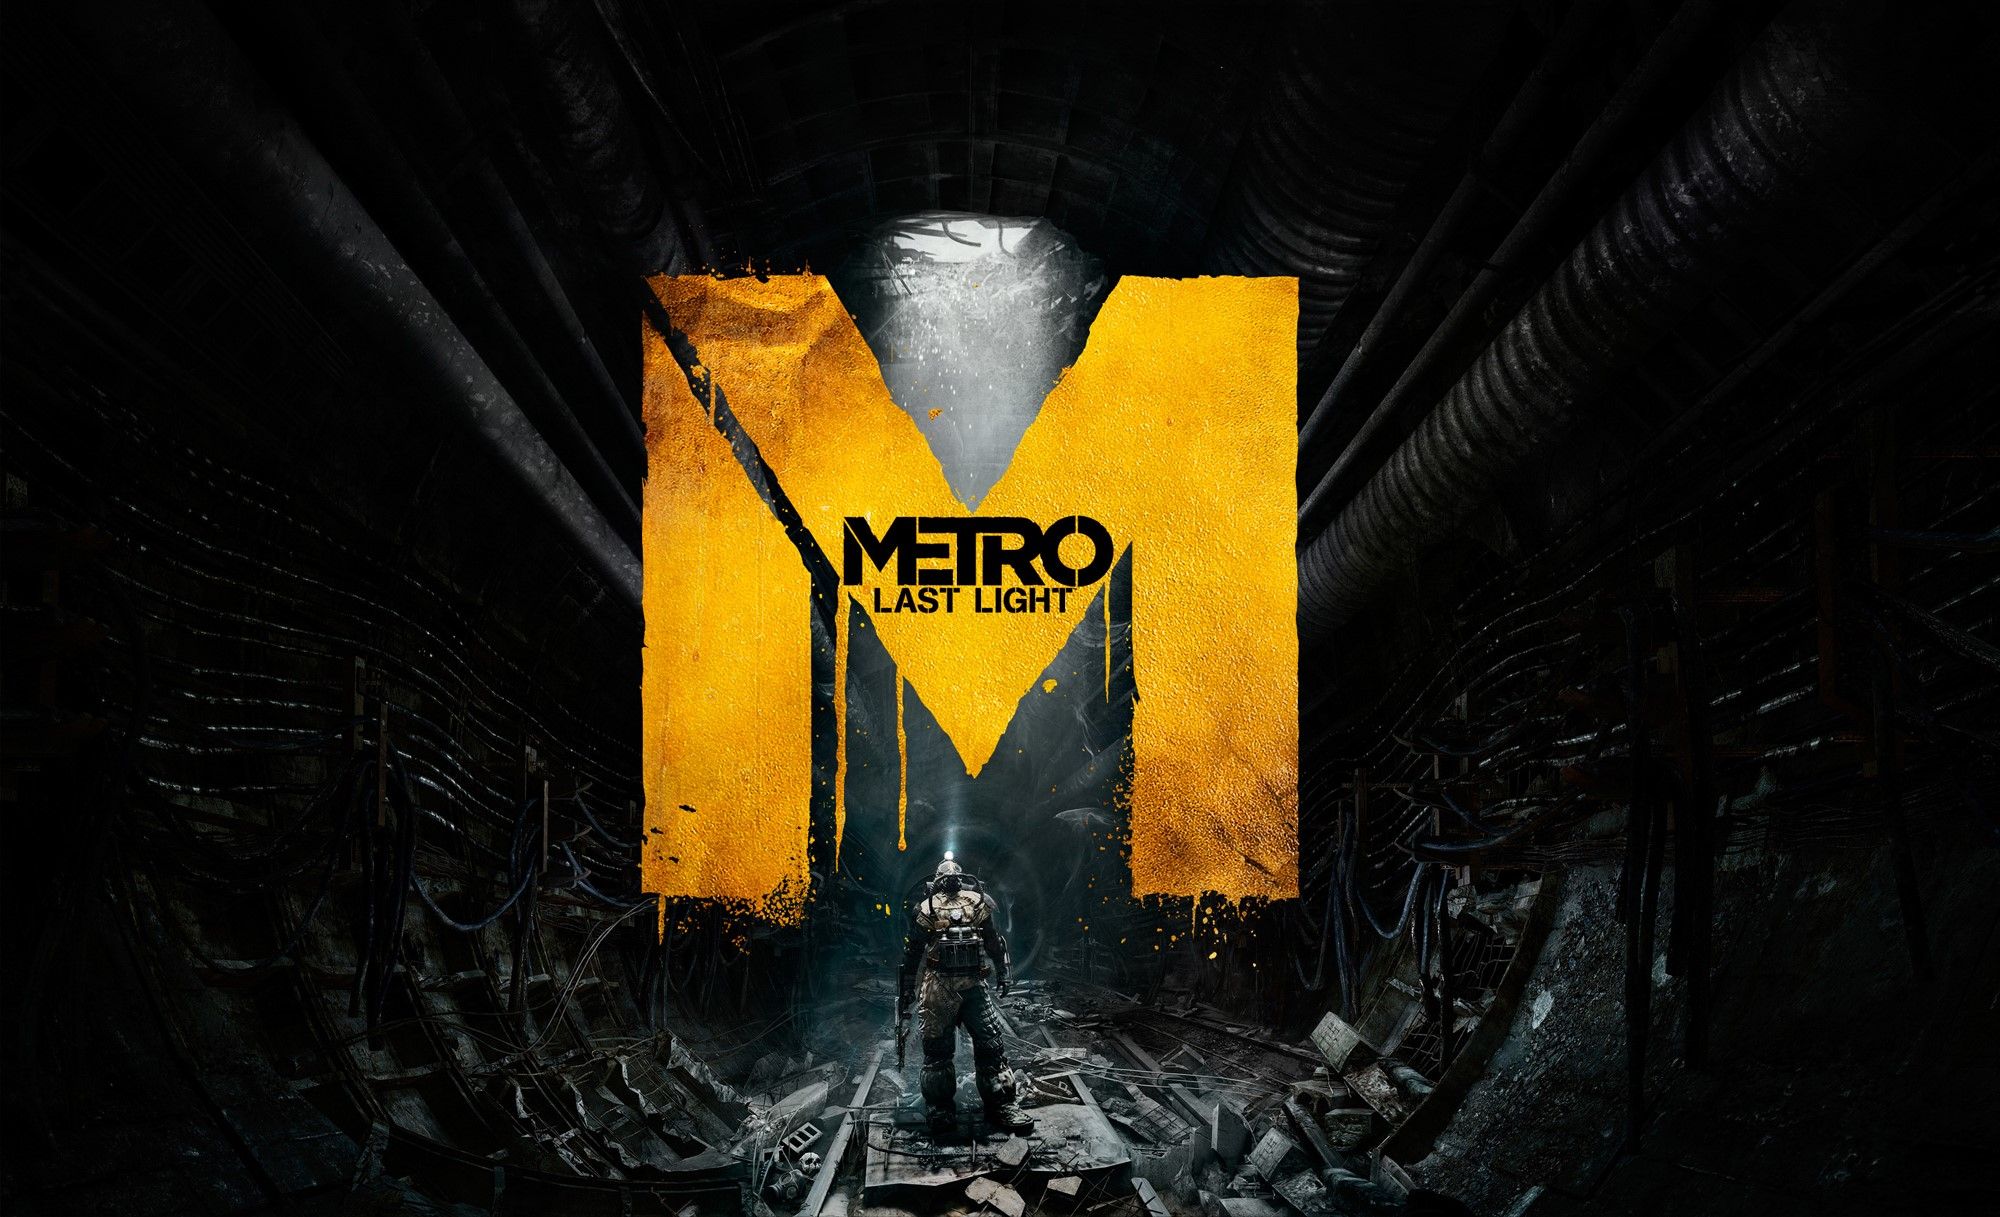 Metro: Last Light (STEAM Key) RU